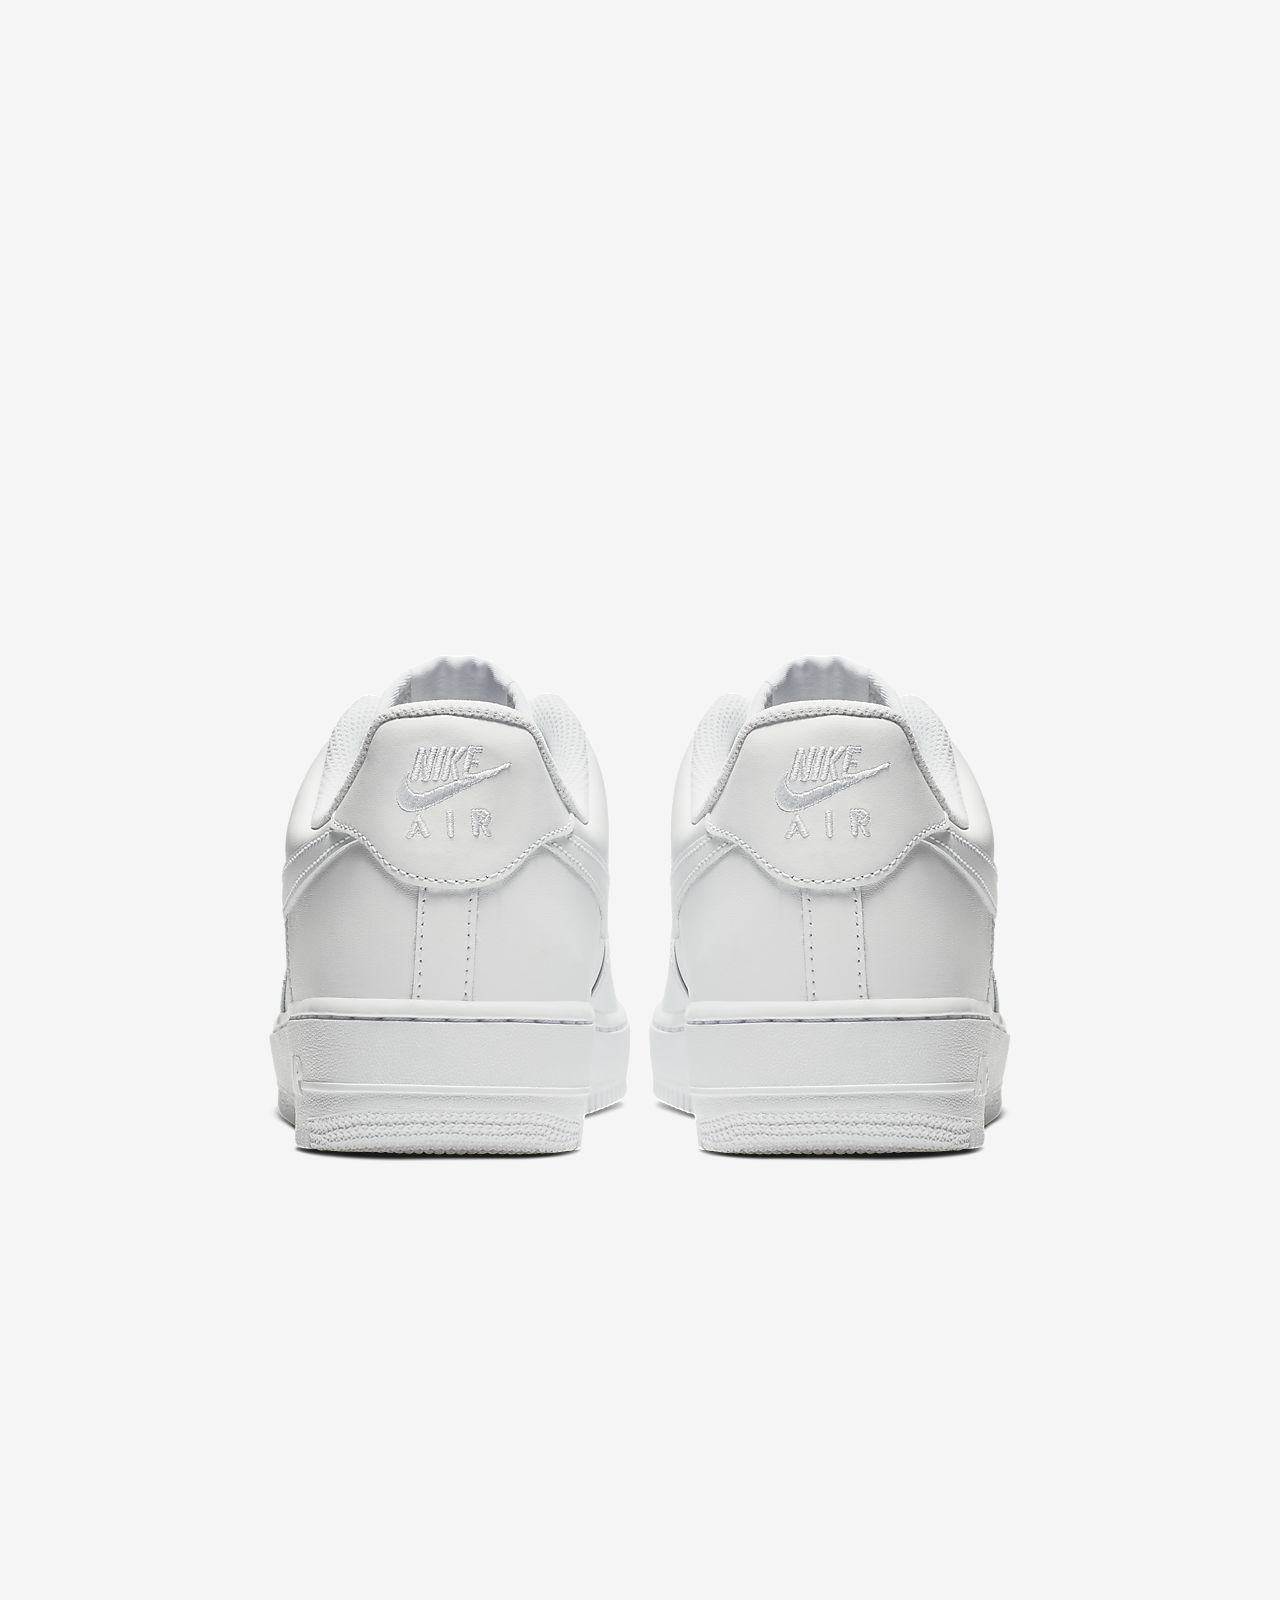 official photos 86fc0 c5d21 ... Chaussure Nike Air Force 1  07